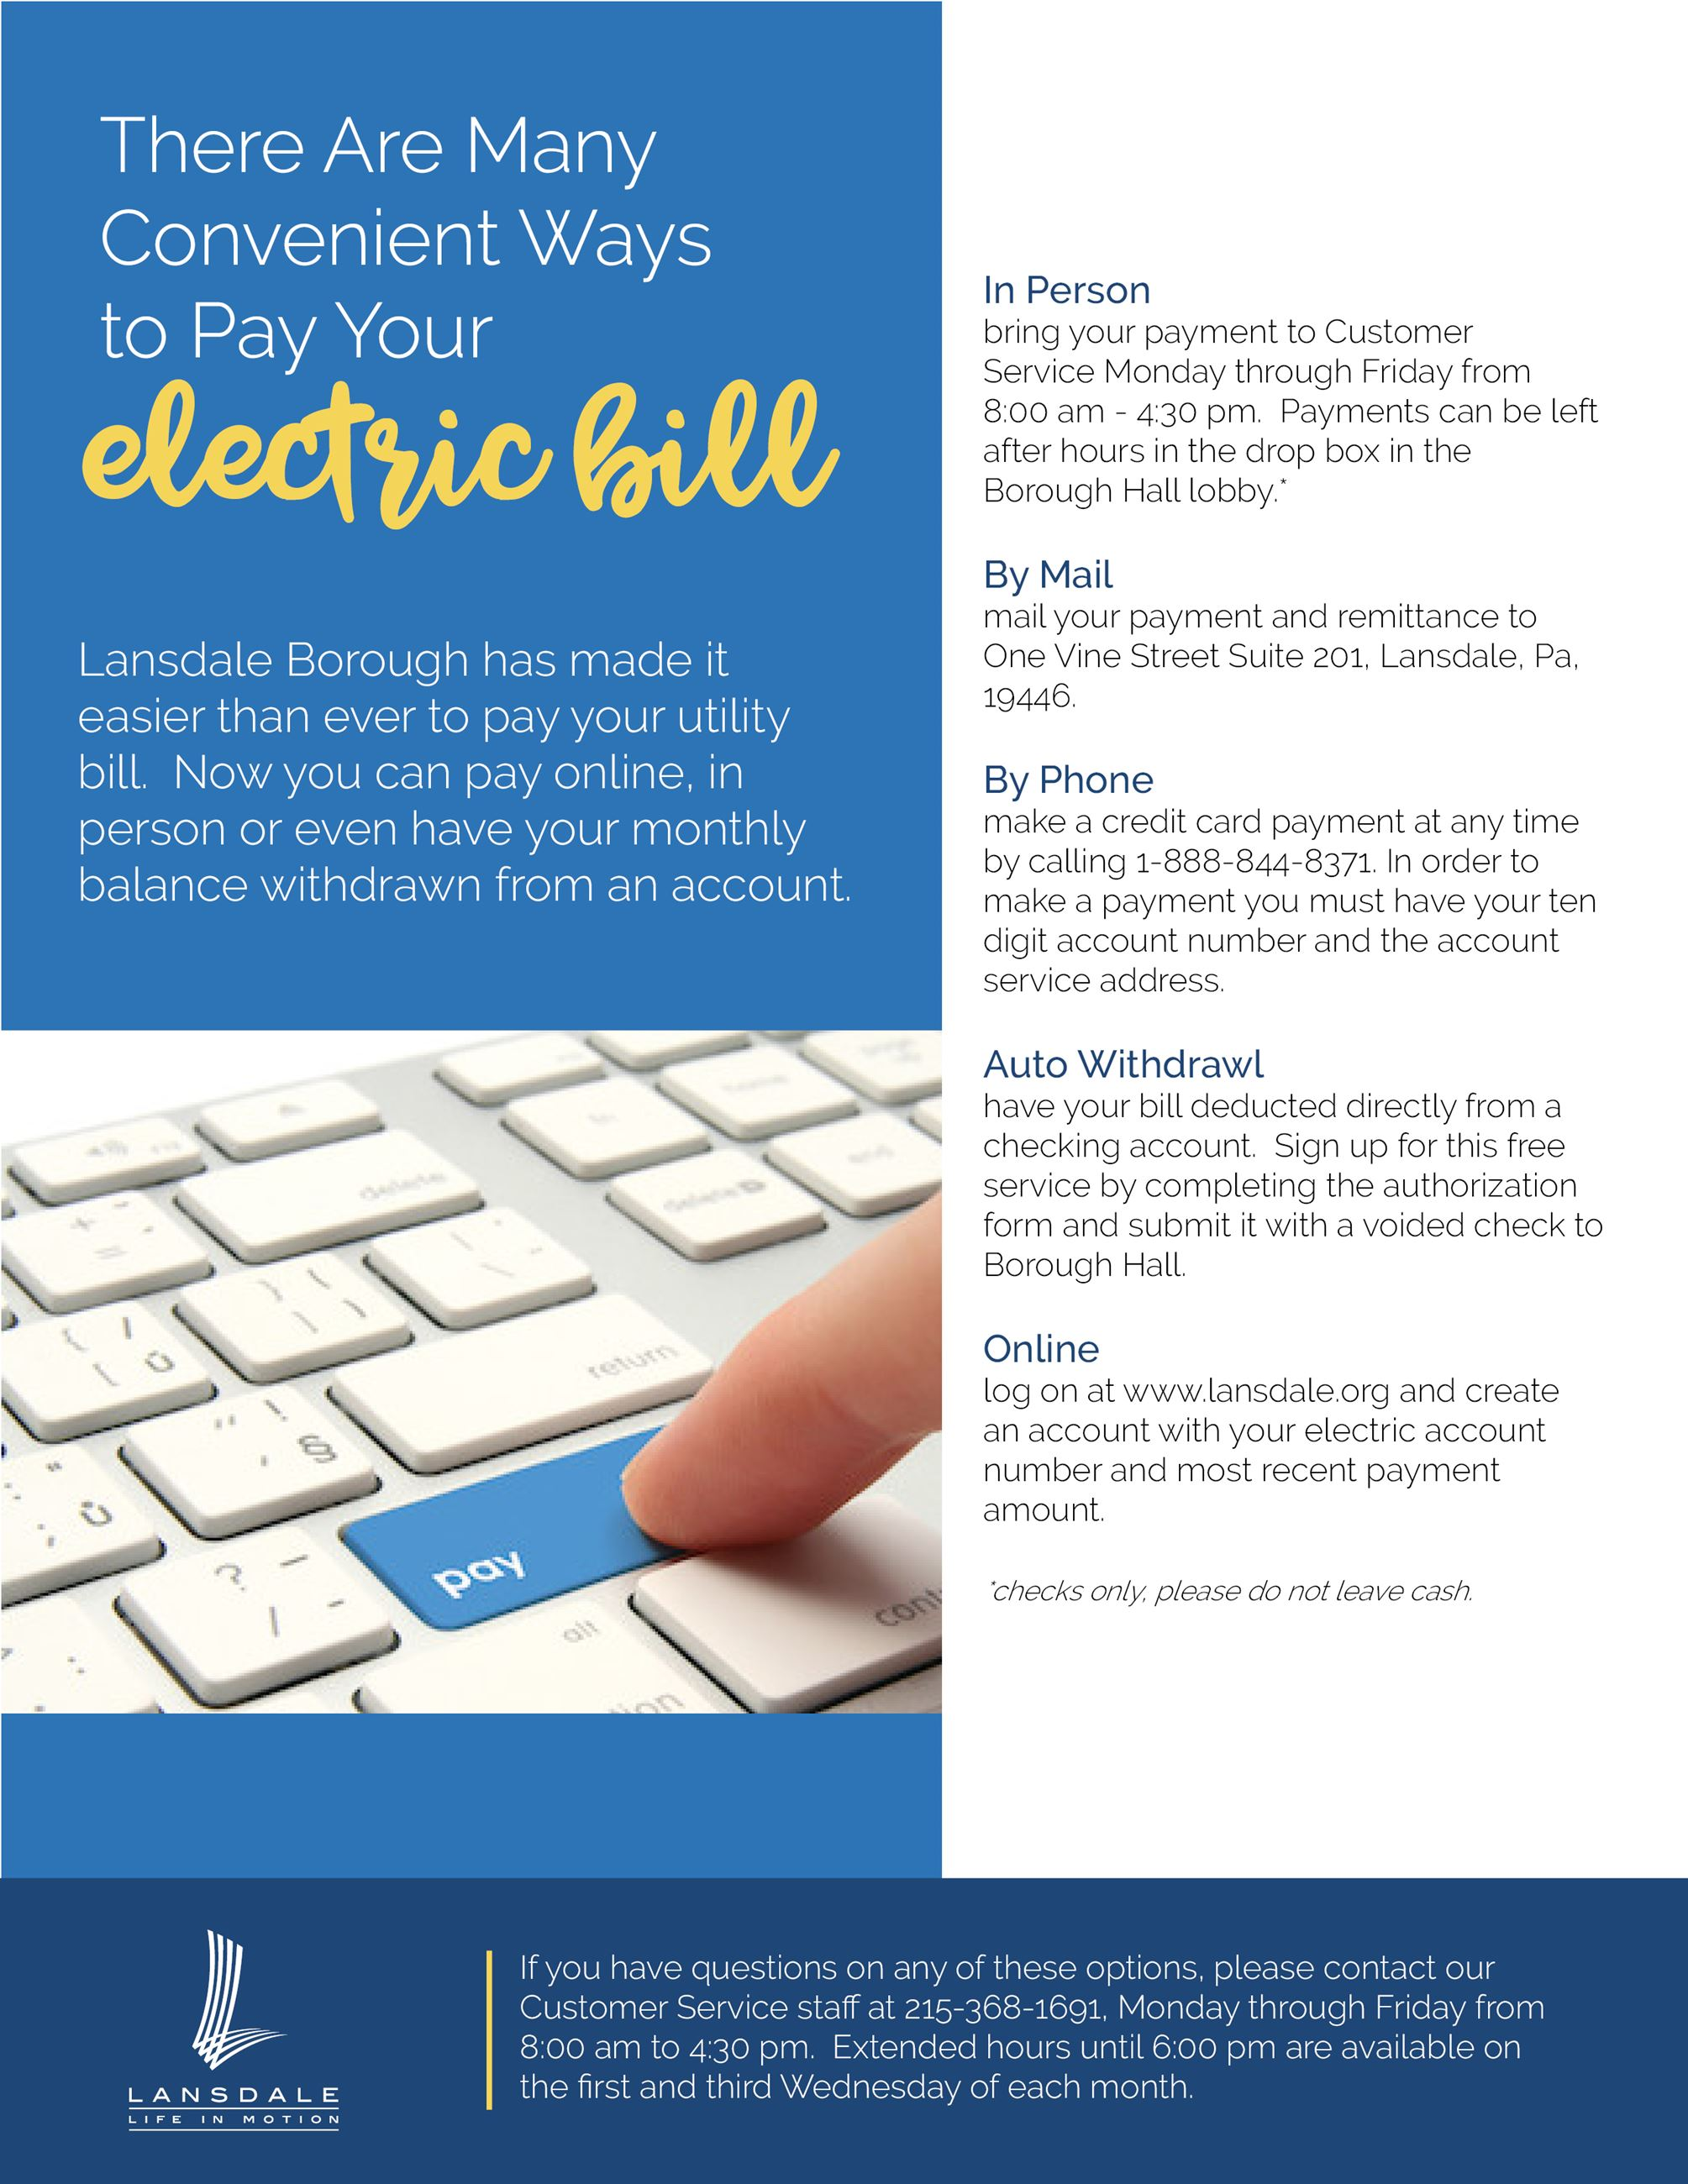 Ways to Pay Electric Bill